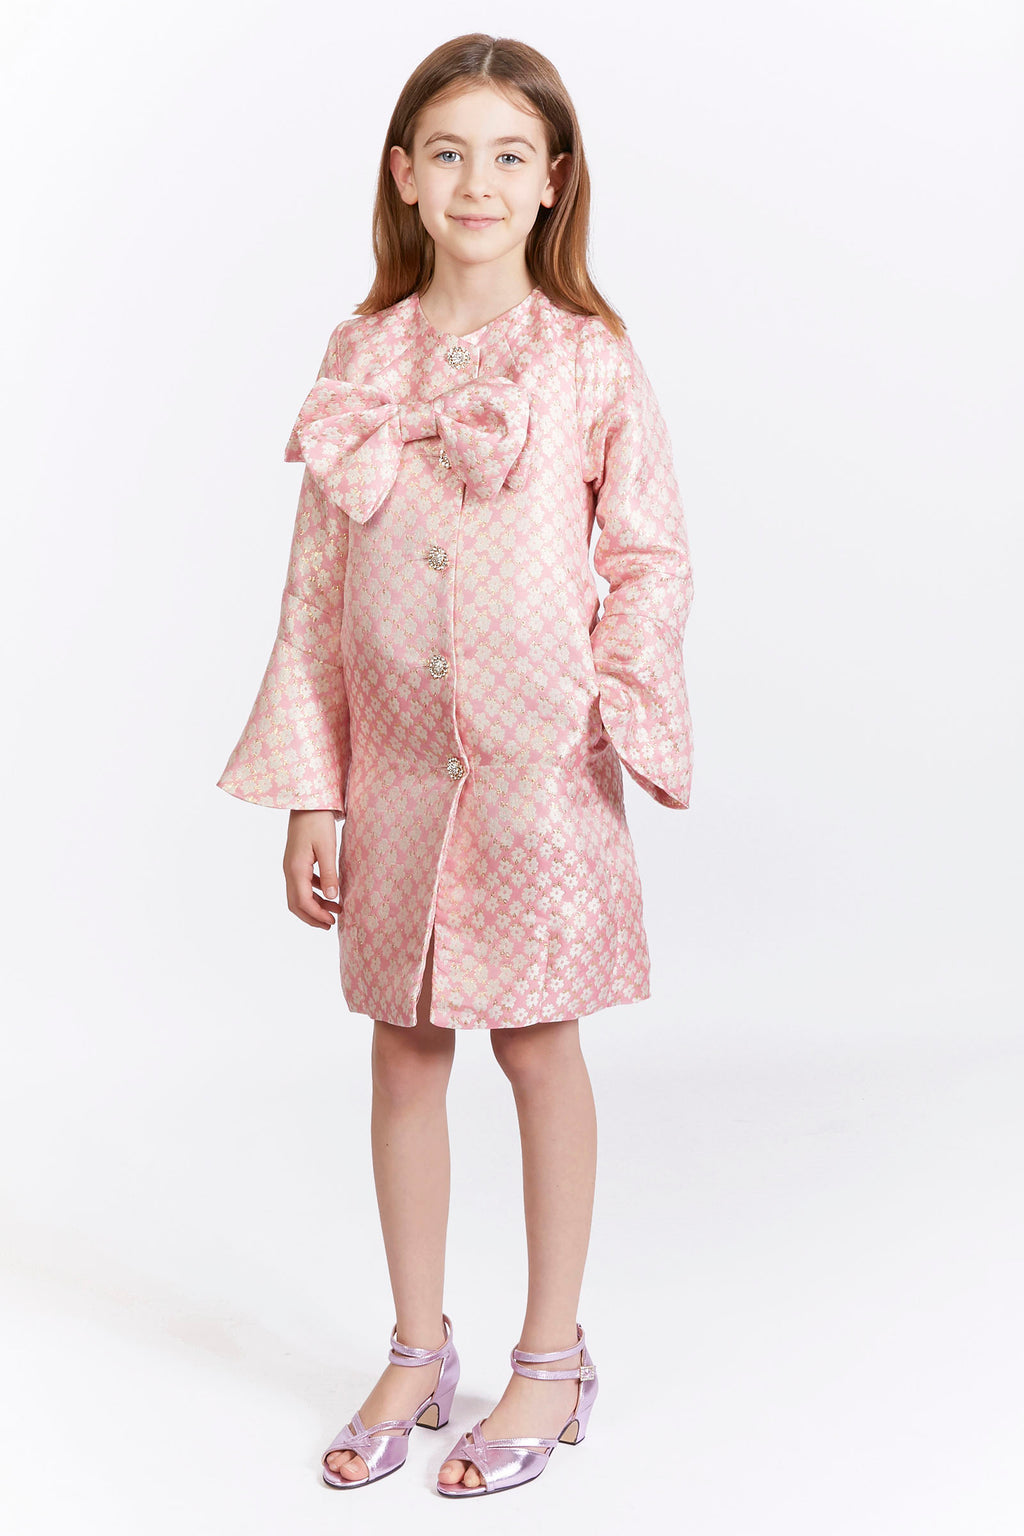 Kids Floral Brocade Jacket